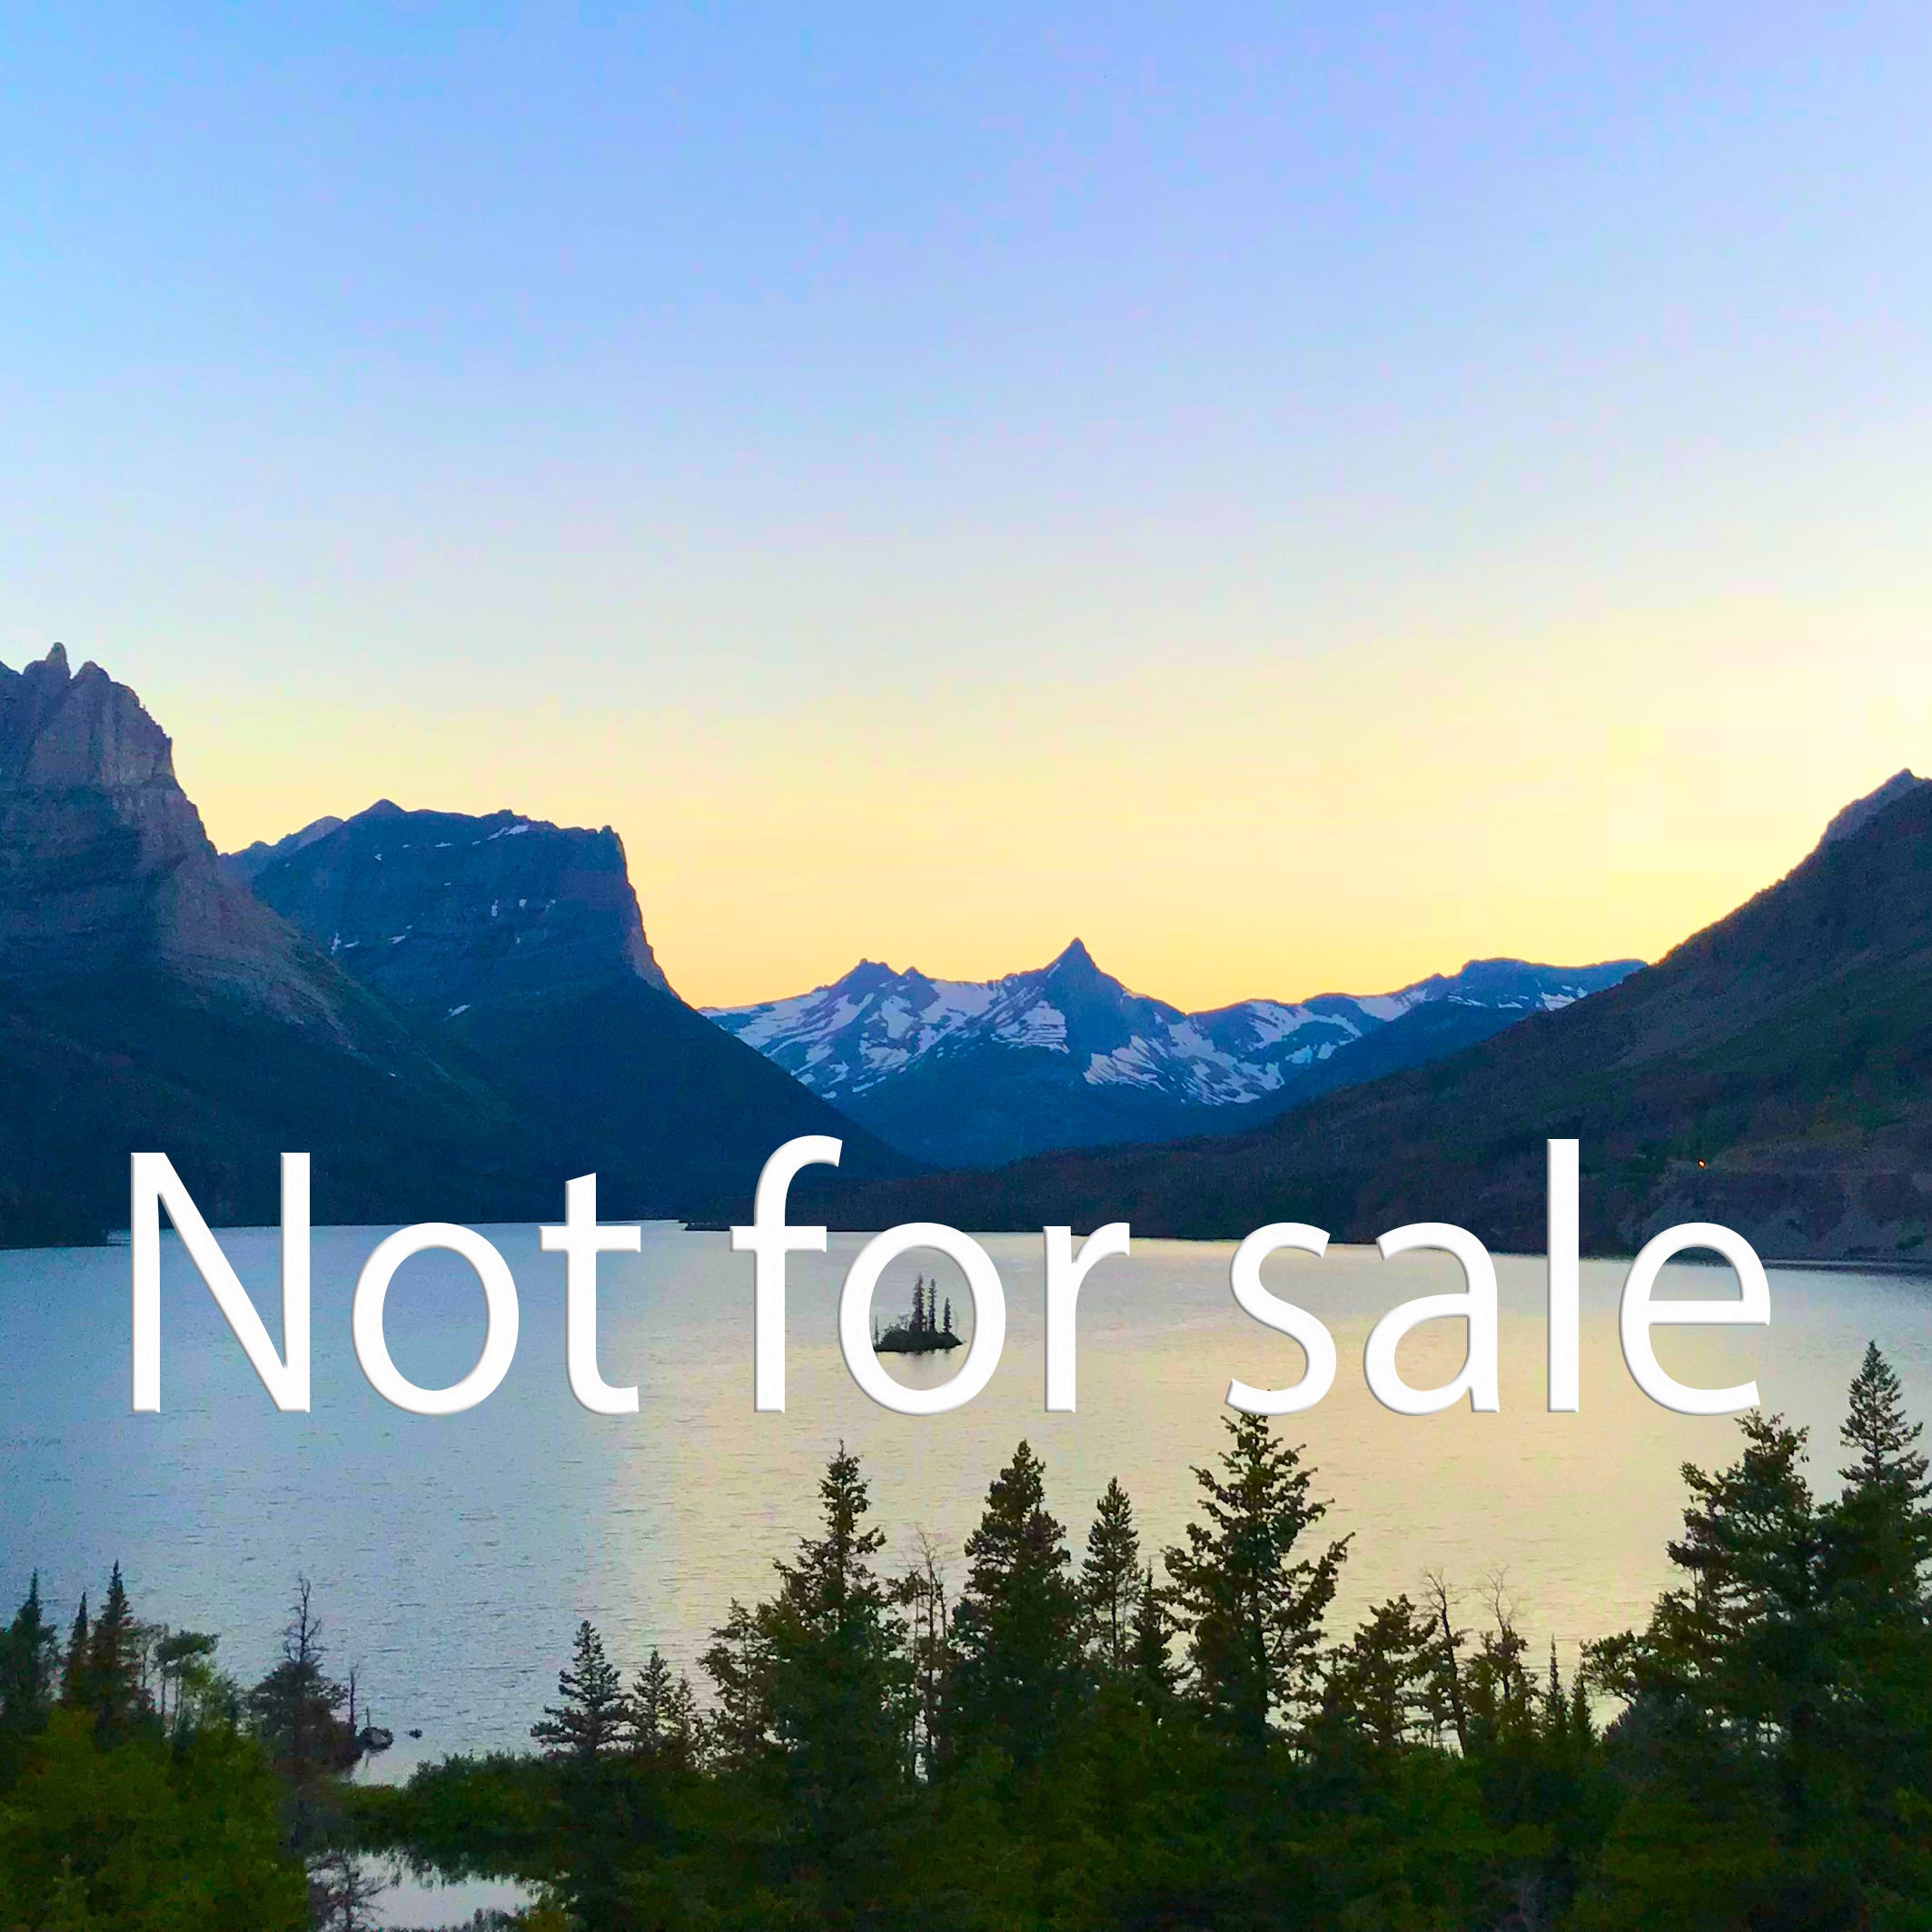 Montana Legislature: How about we DON'T sell Montana to Canada for $1 trillion